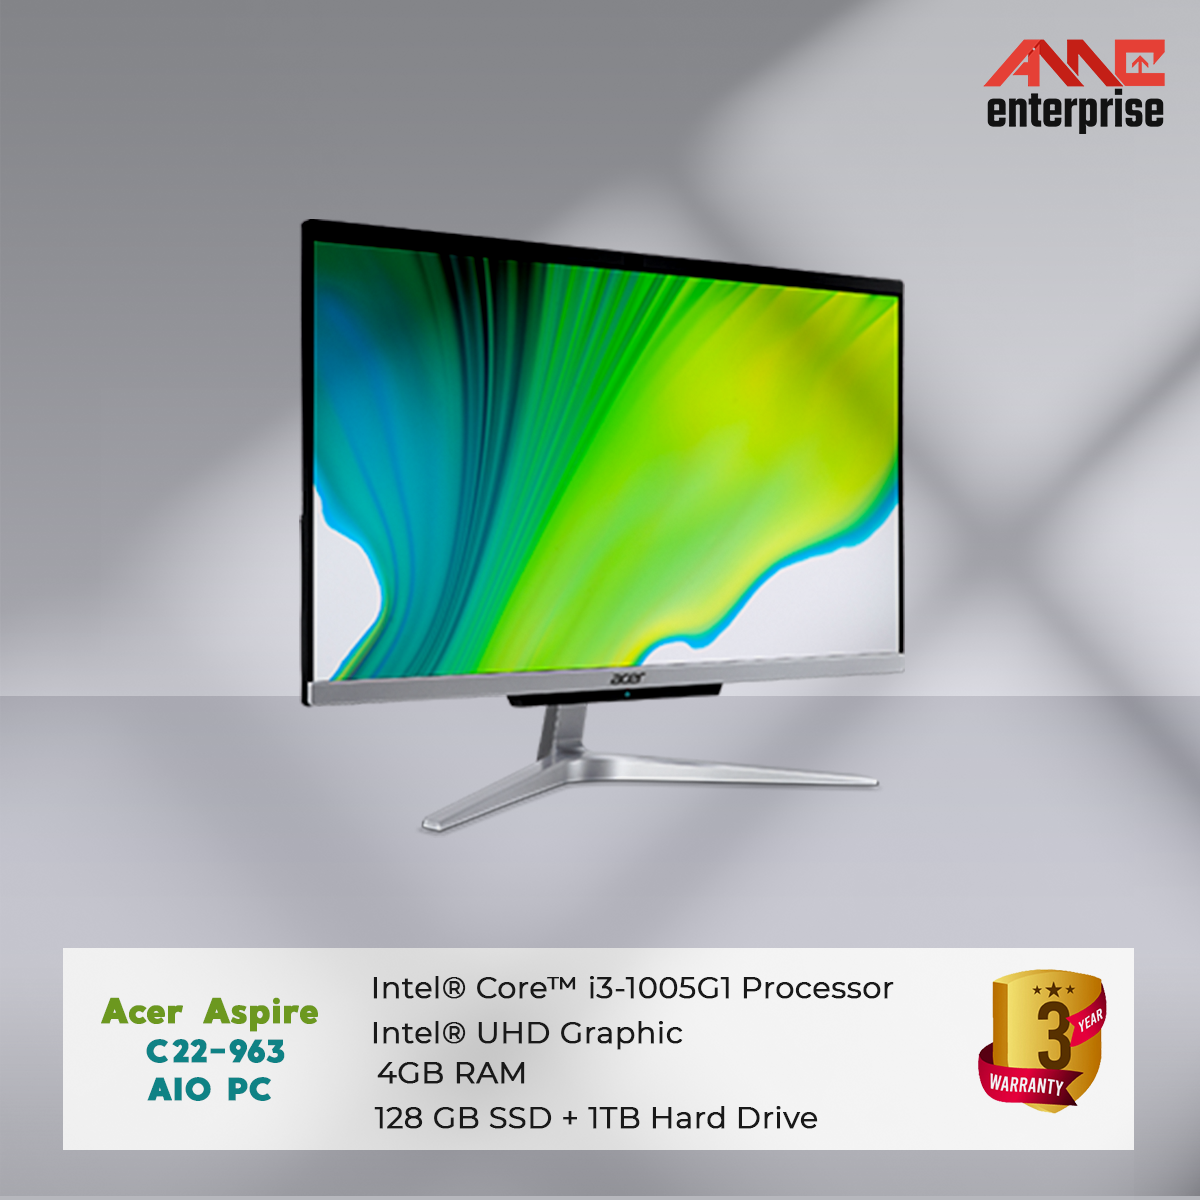 ACER Aspire C22-963 ALL-IN-ONE PC (3).png